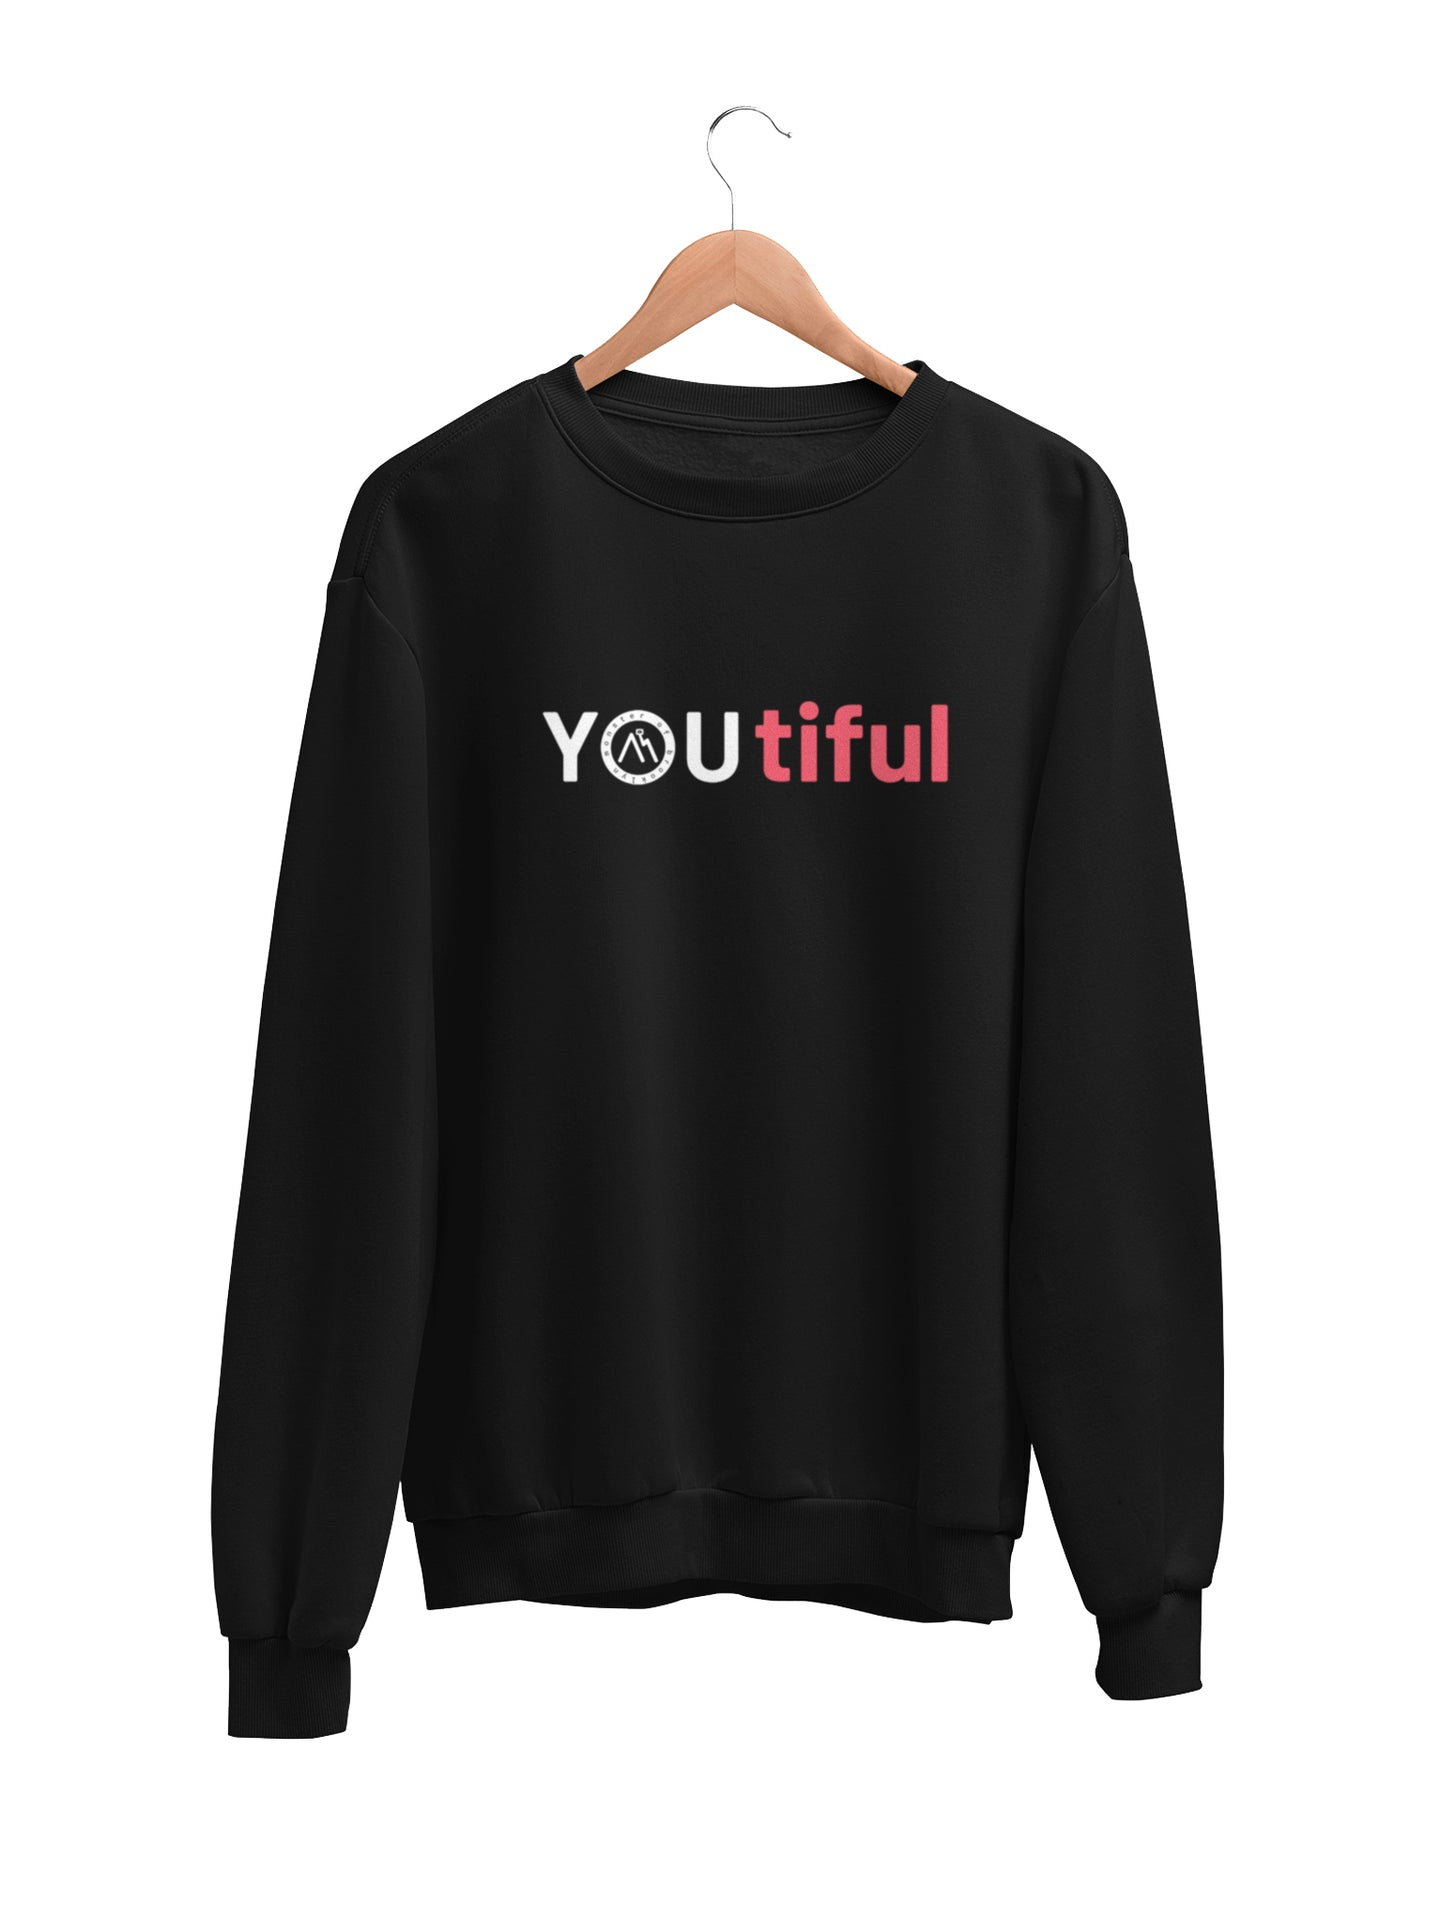 Sweatshirt with YOUtiful Motif - Women